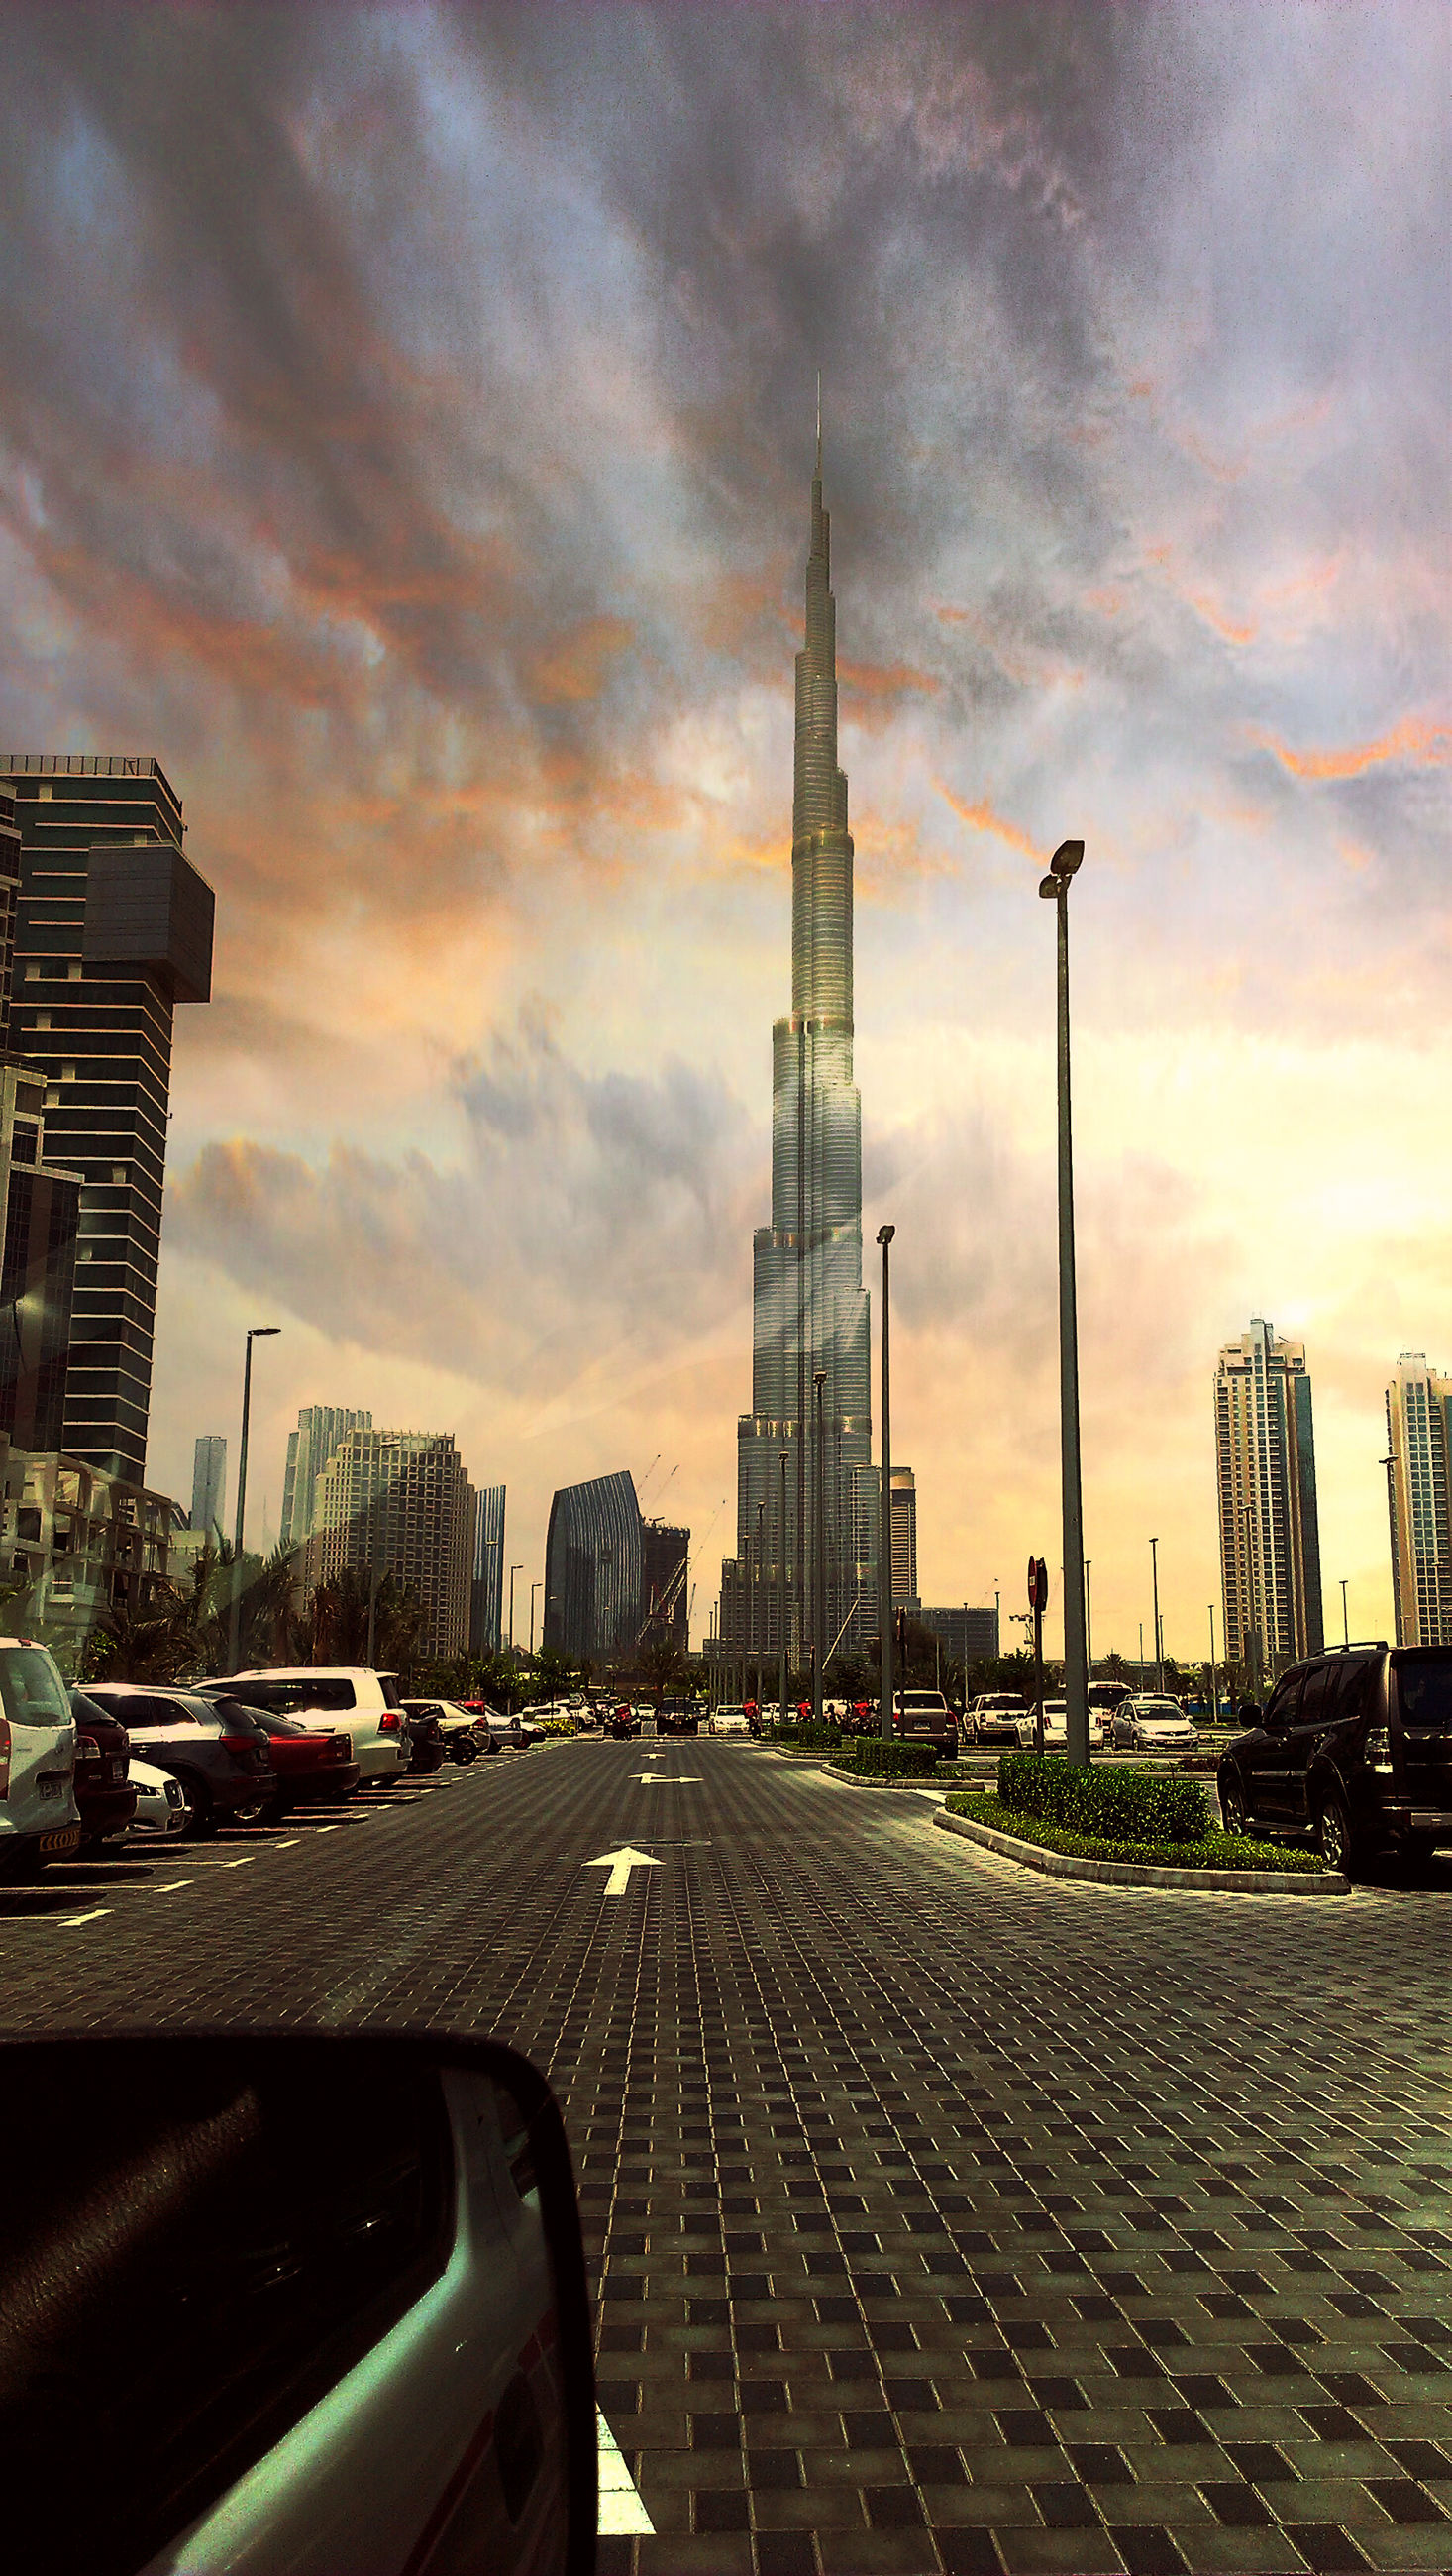 building exterior, architecture, city, built structure, sky, cloud - sky, transportation, tall - high, tower, skyscraper, car, sunset, cloudy, road, the way forward, street, land vehicle, mode of transport, capital cities, travel destinations